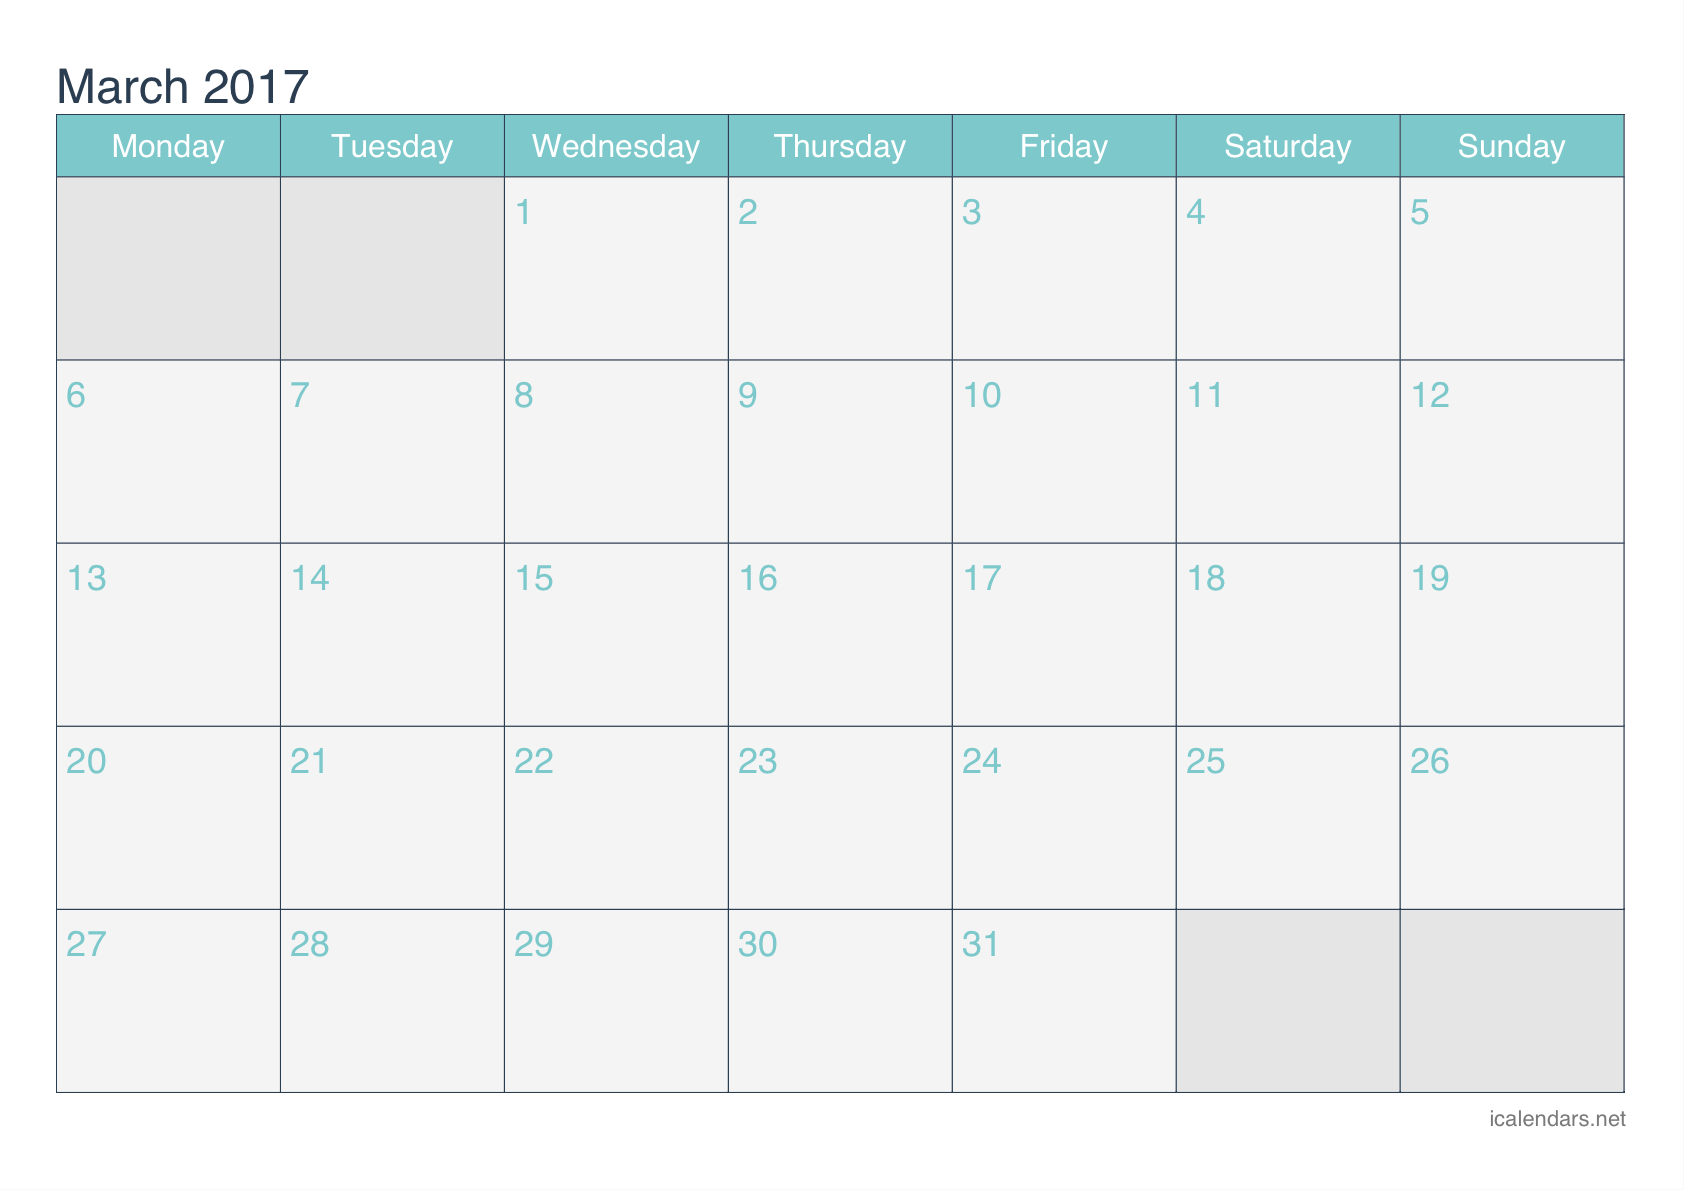 Printable Calendar of March 2017